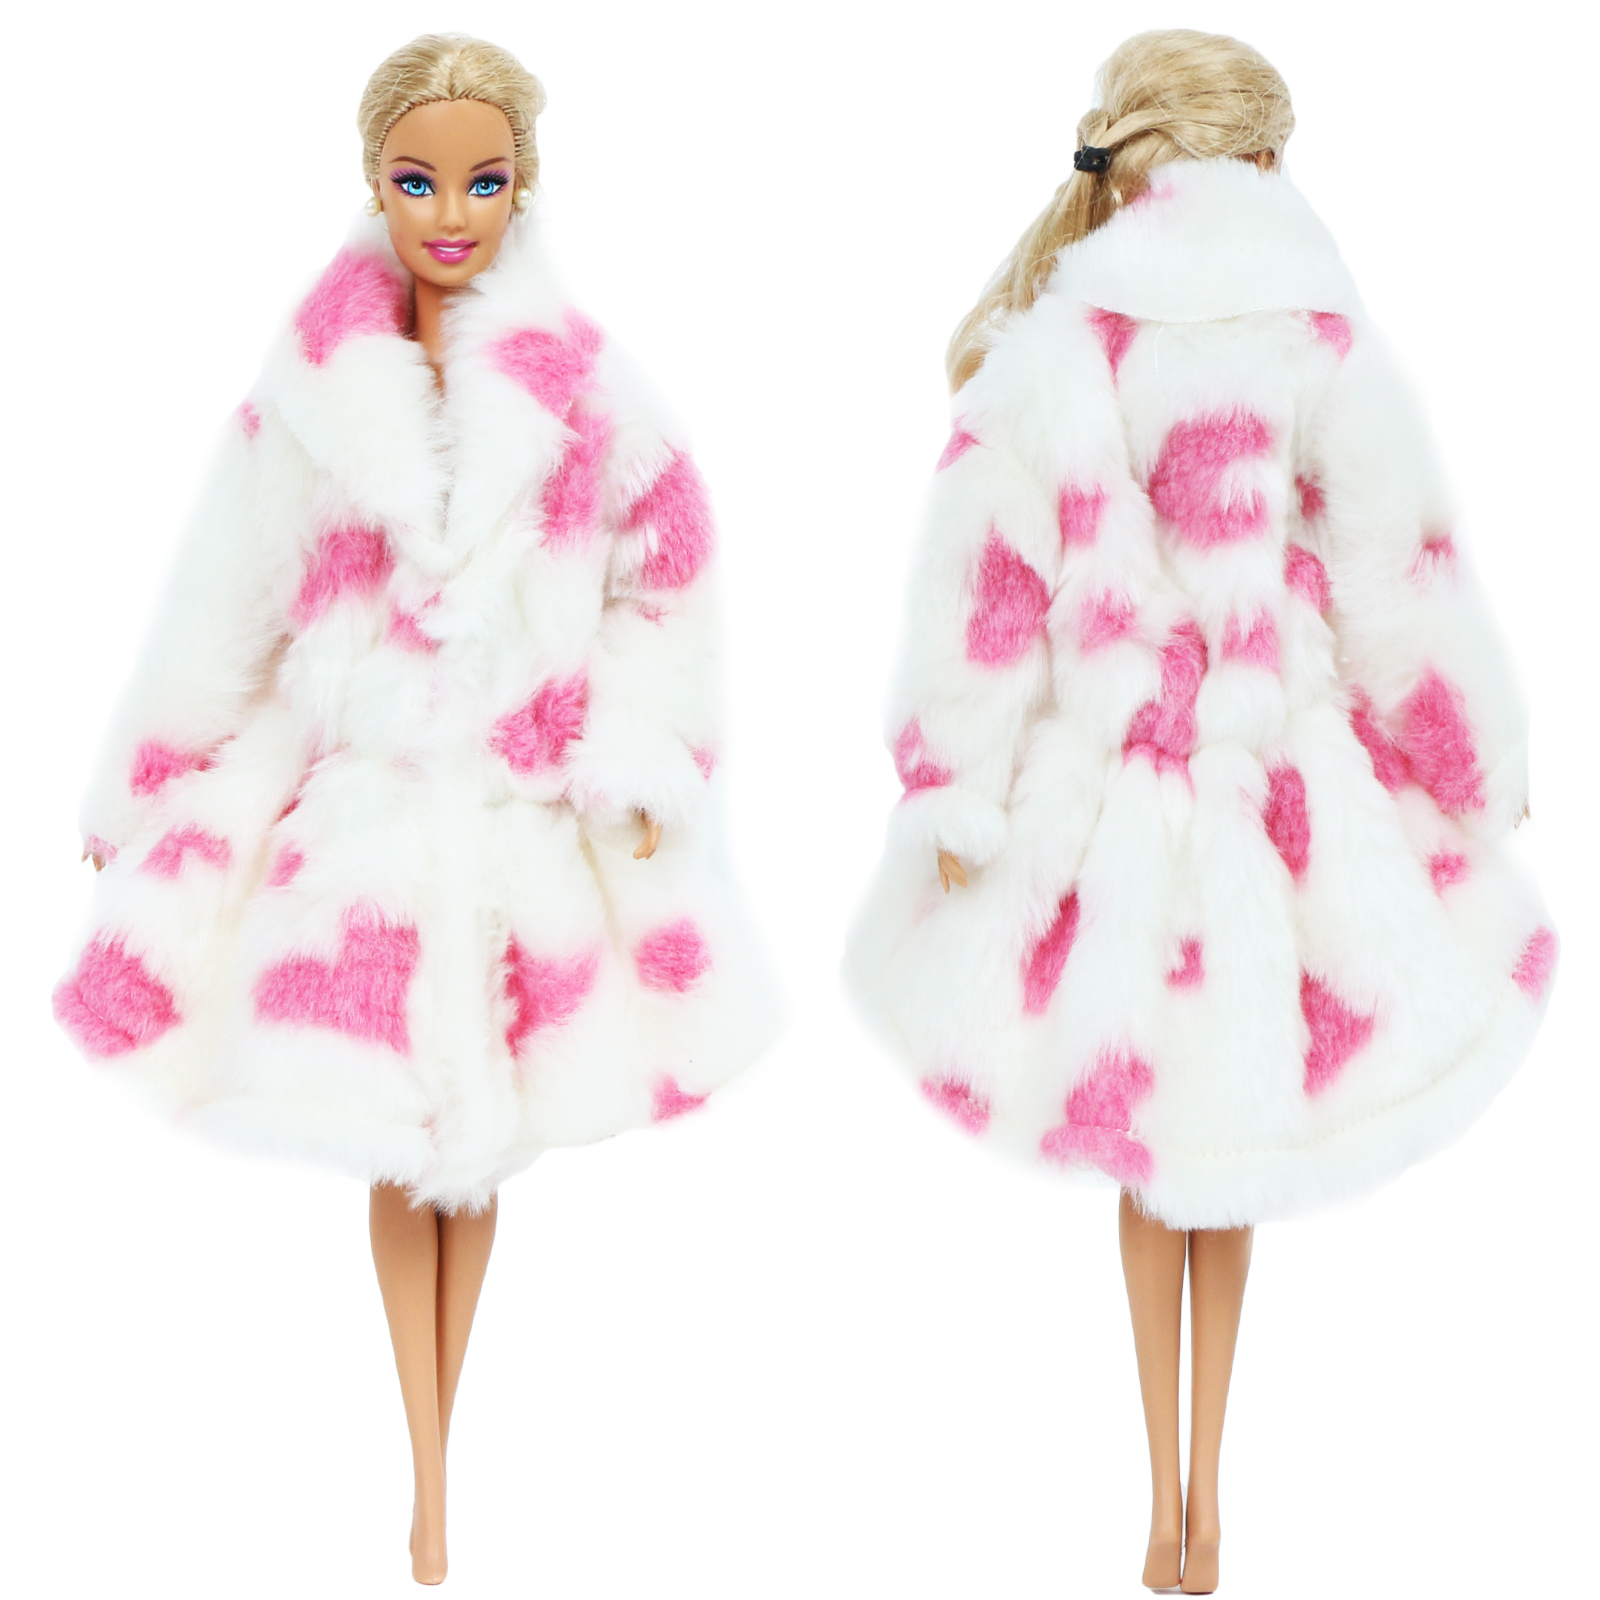 Doll Accessories Set Winter Super Long Fur Coat Fashion Clothes For 11.5in Doll